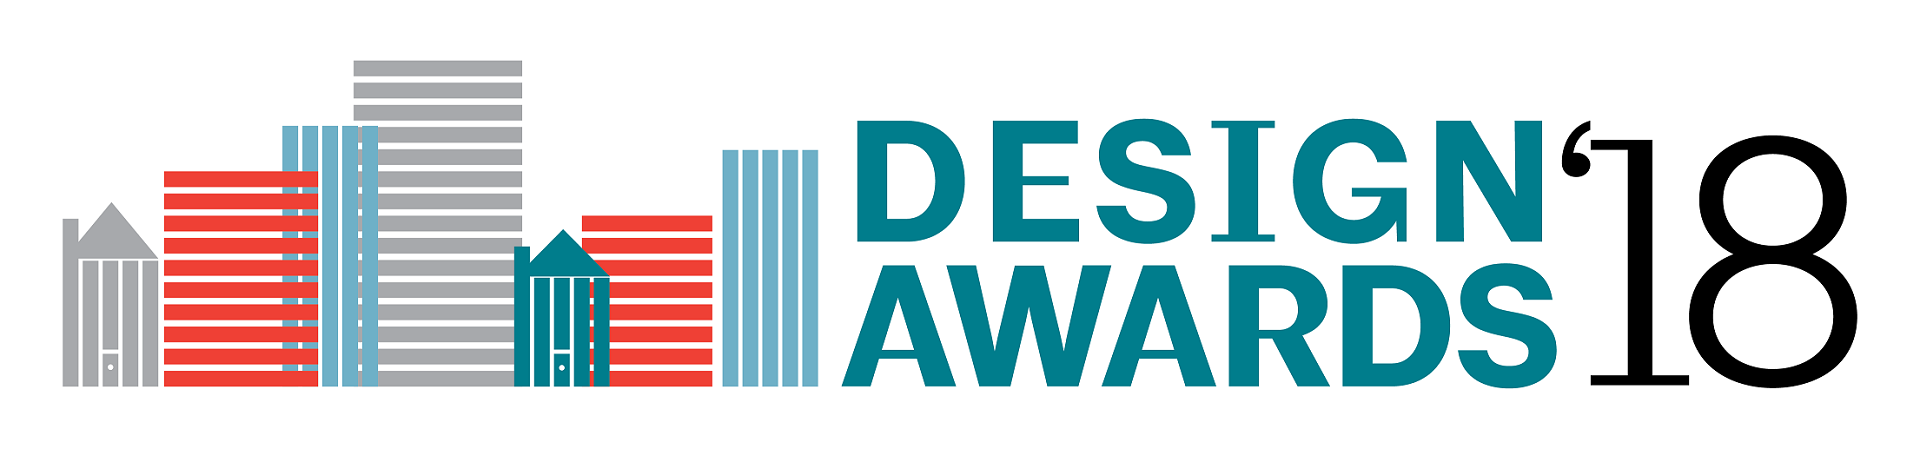 2018 AIANYS Design Awards